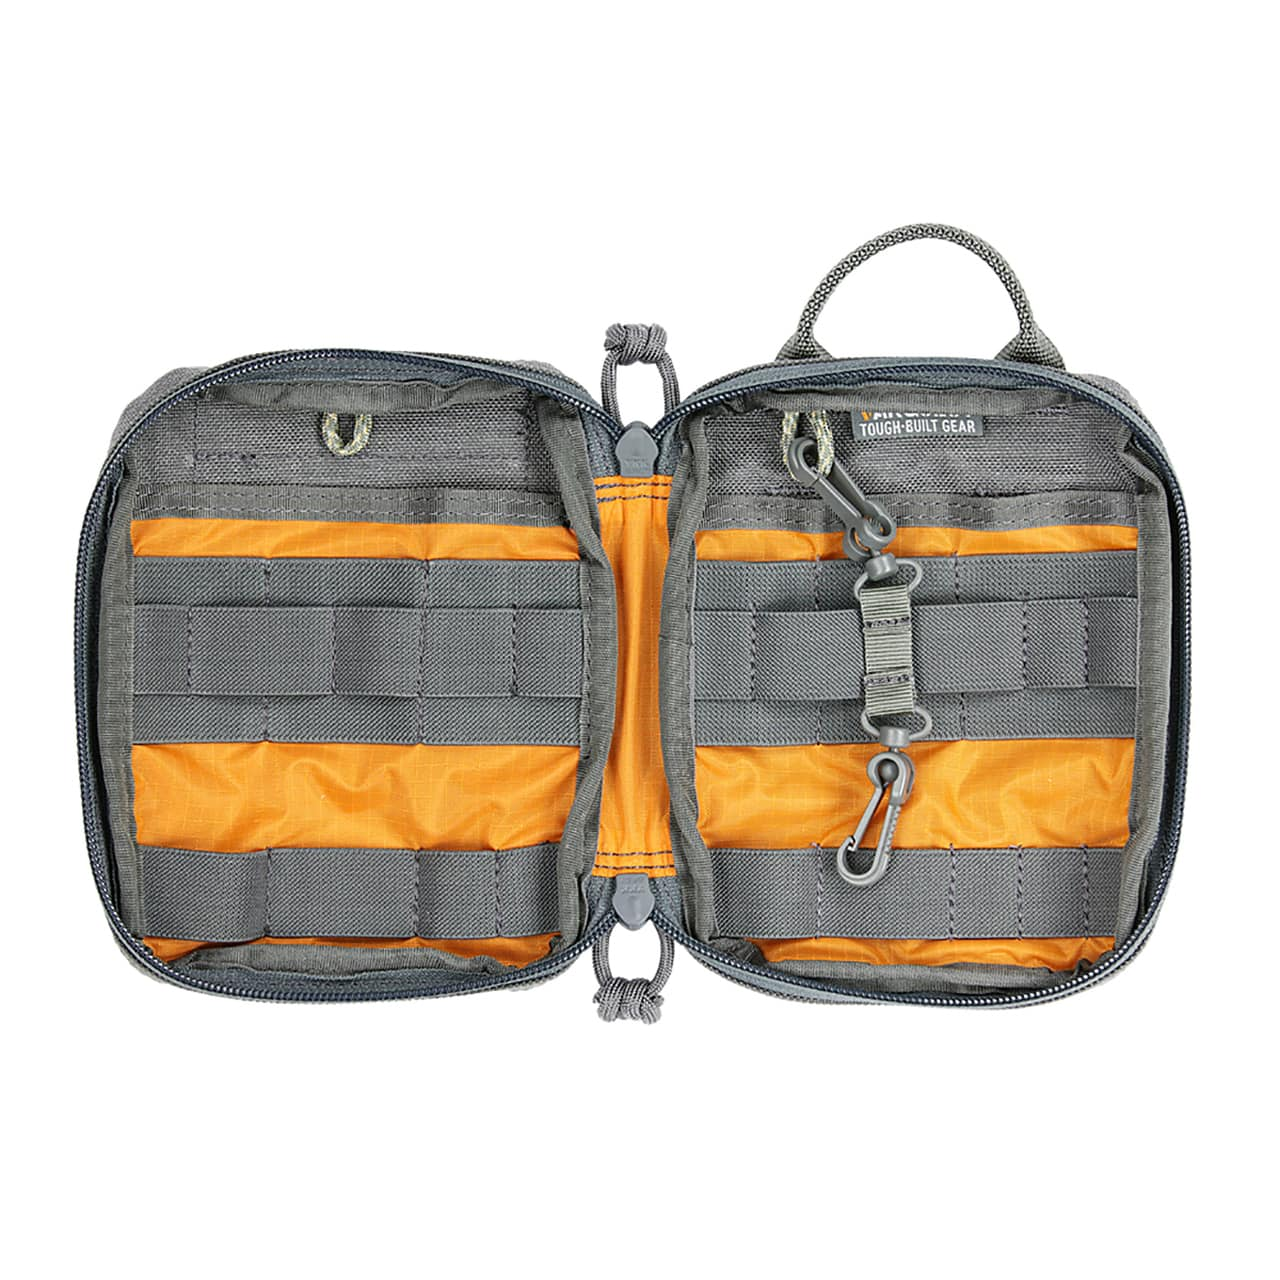 Vanquest PPM-HUGE 2.0 Personal Pocket Maximizer Organizer 2